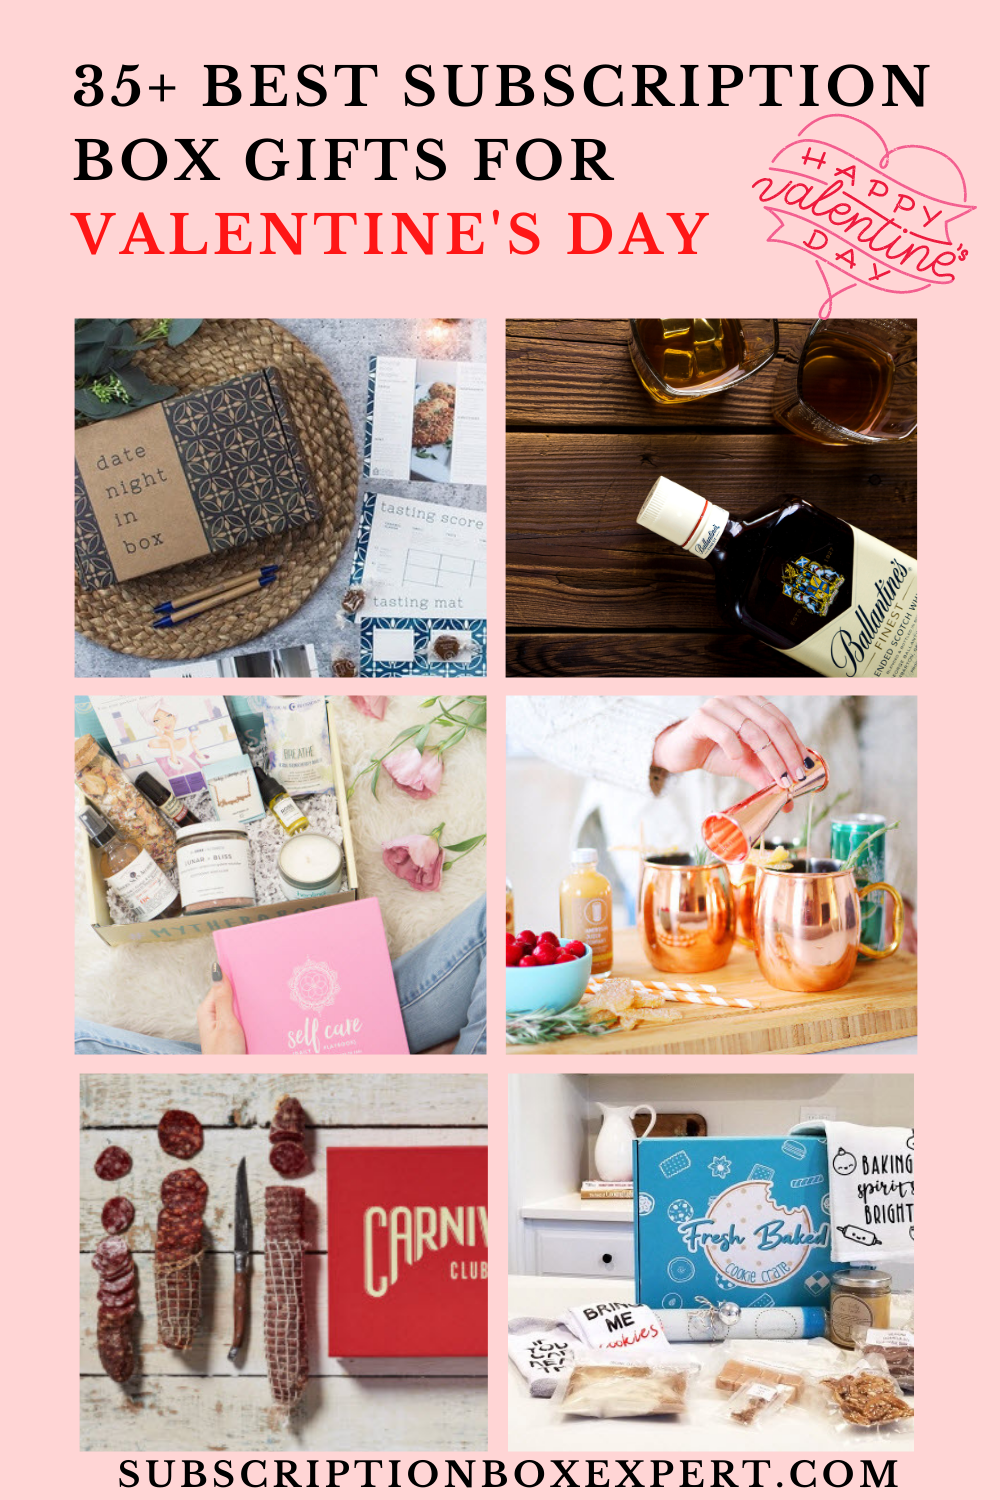 Best Subscription Box Gifts For Valentine's Day - SubscriptionBoxExpert